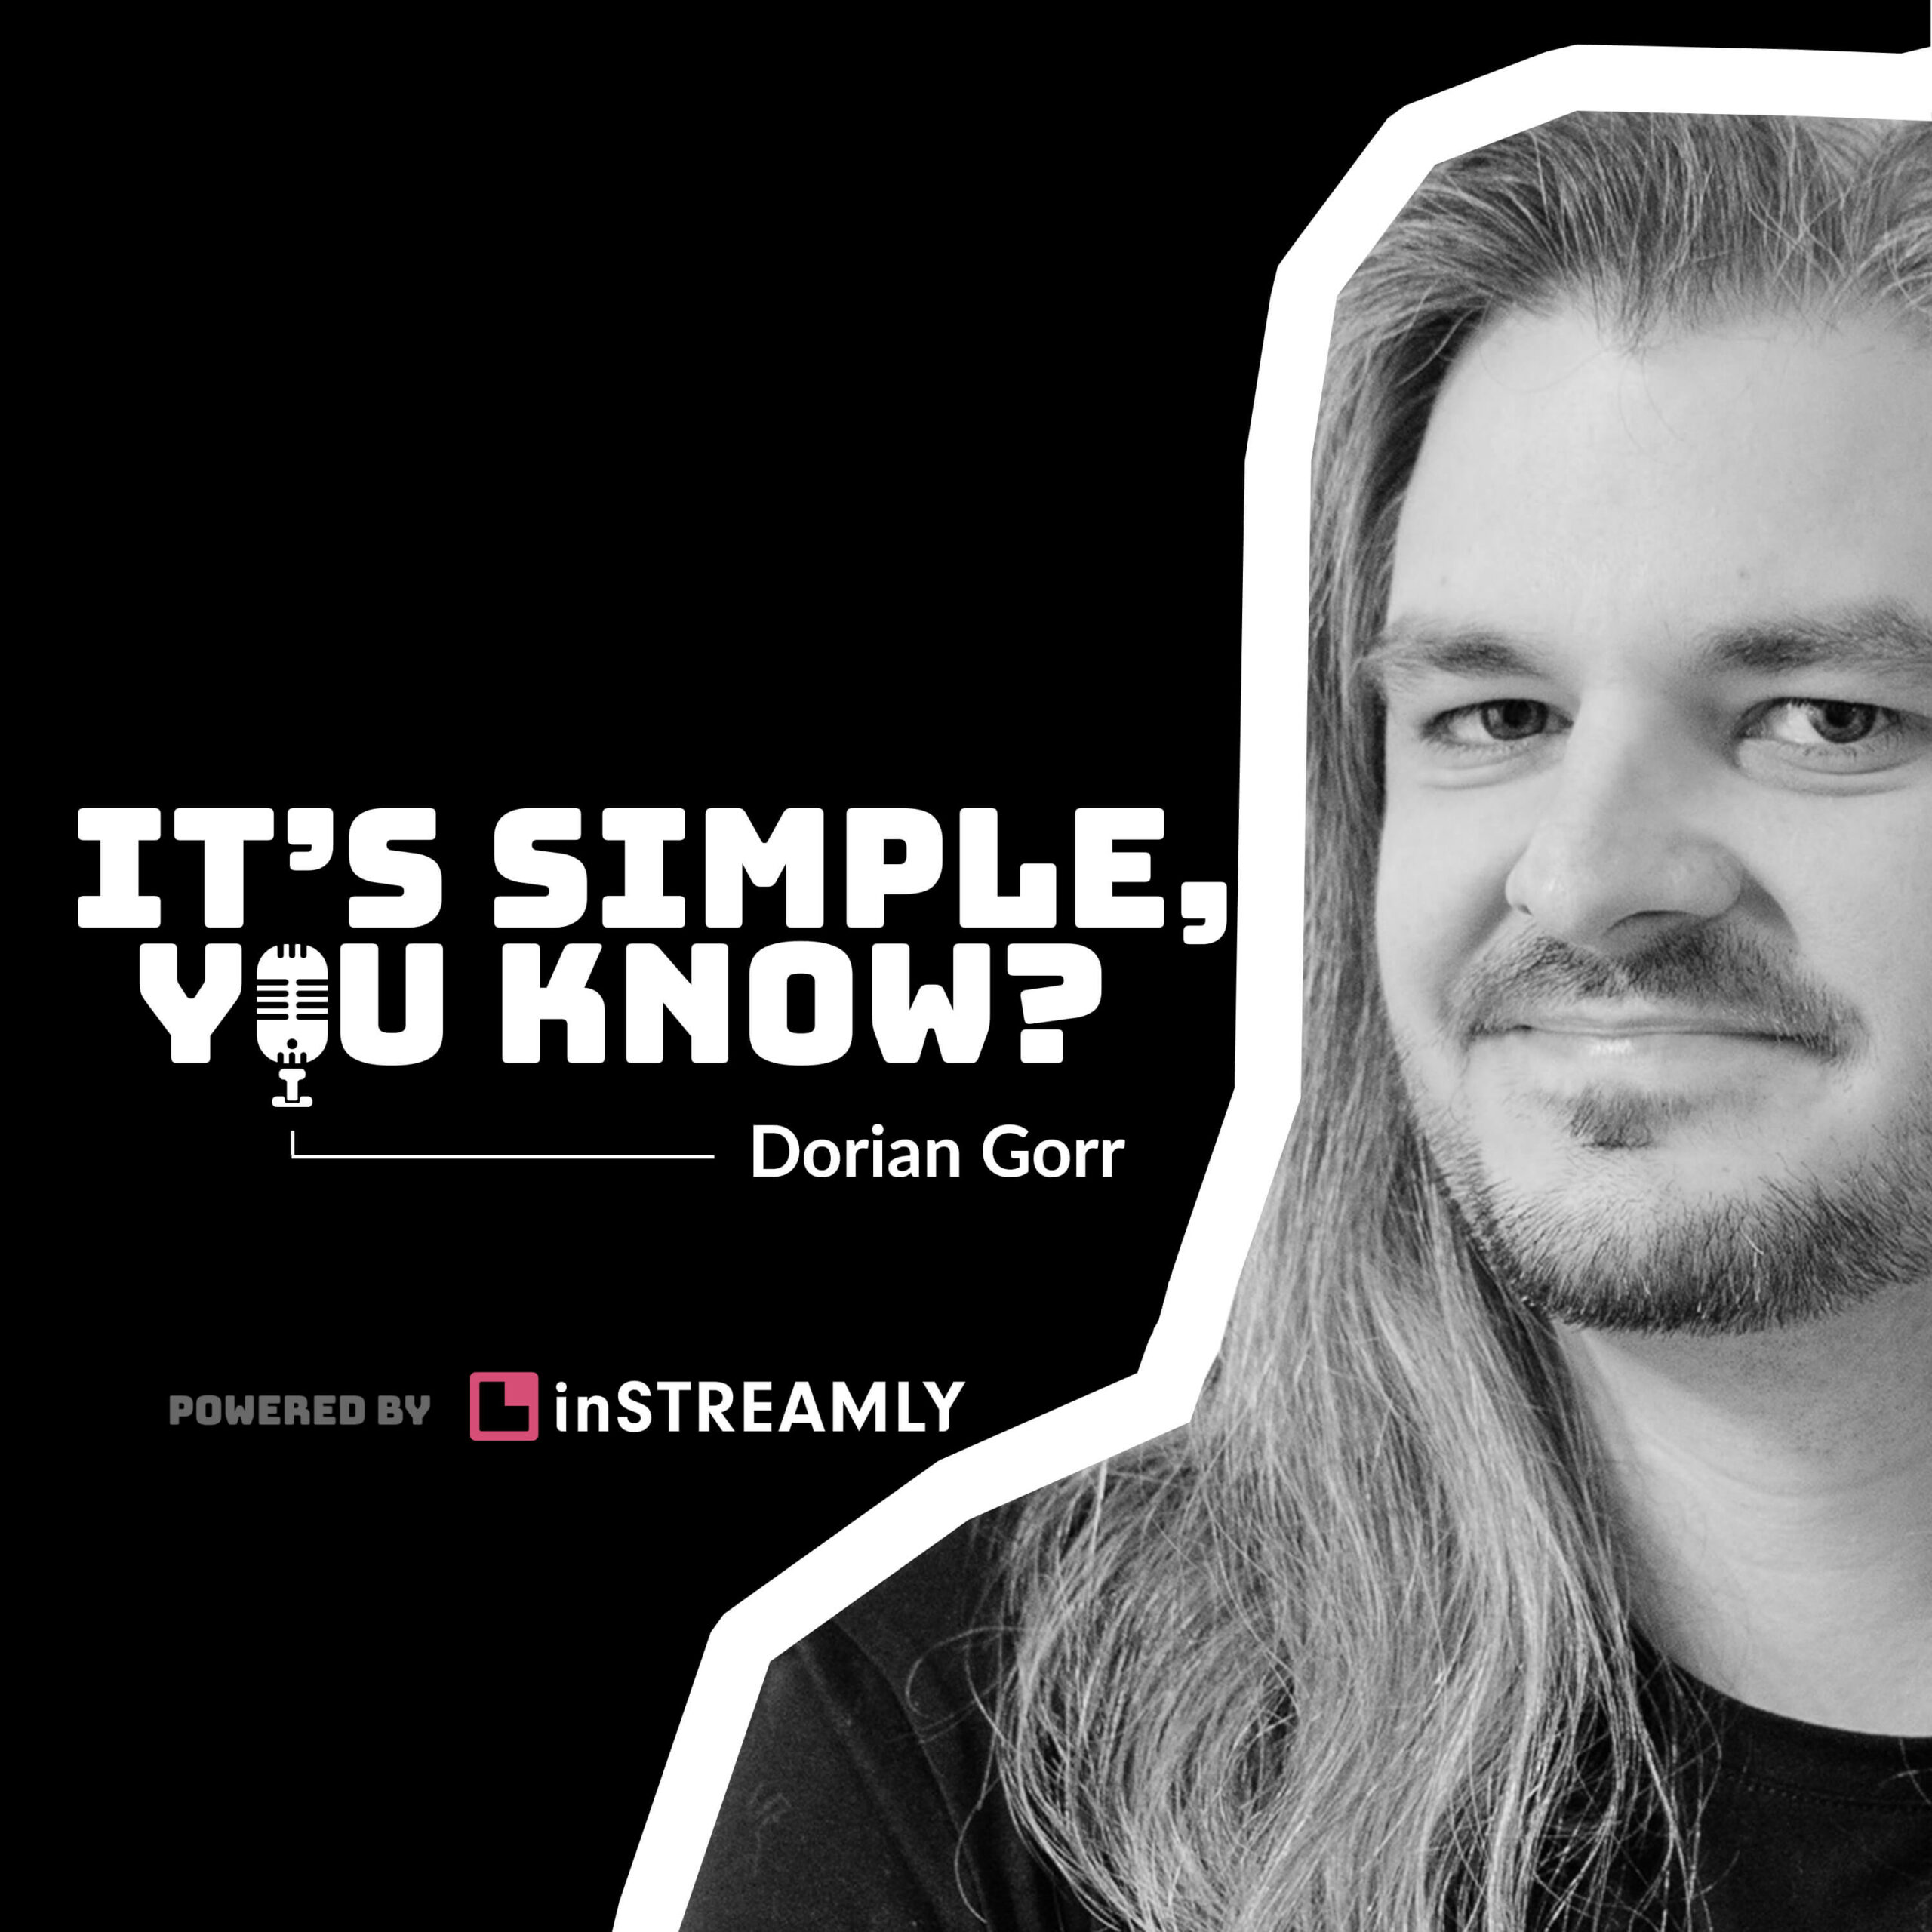 Dorian Gorr - It's all about the content, and content builds community